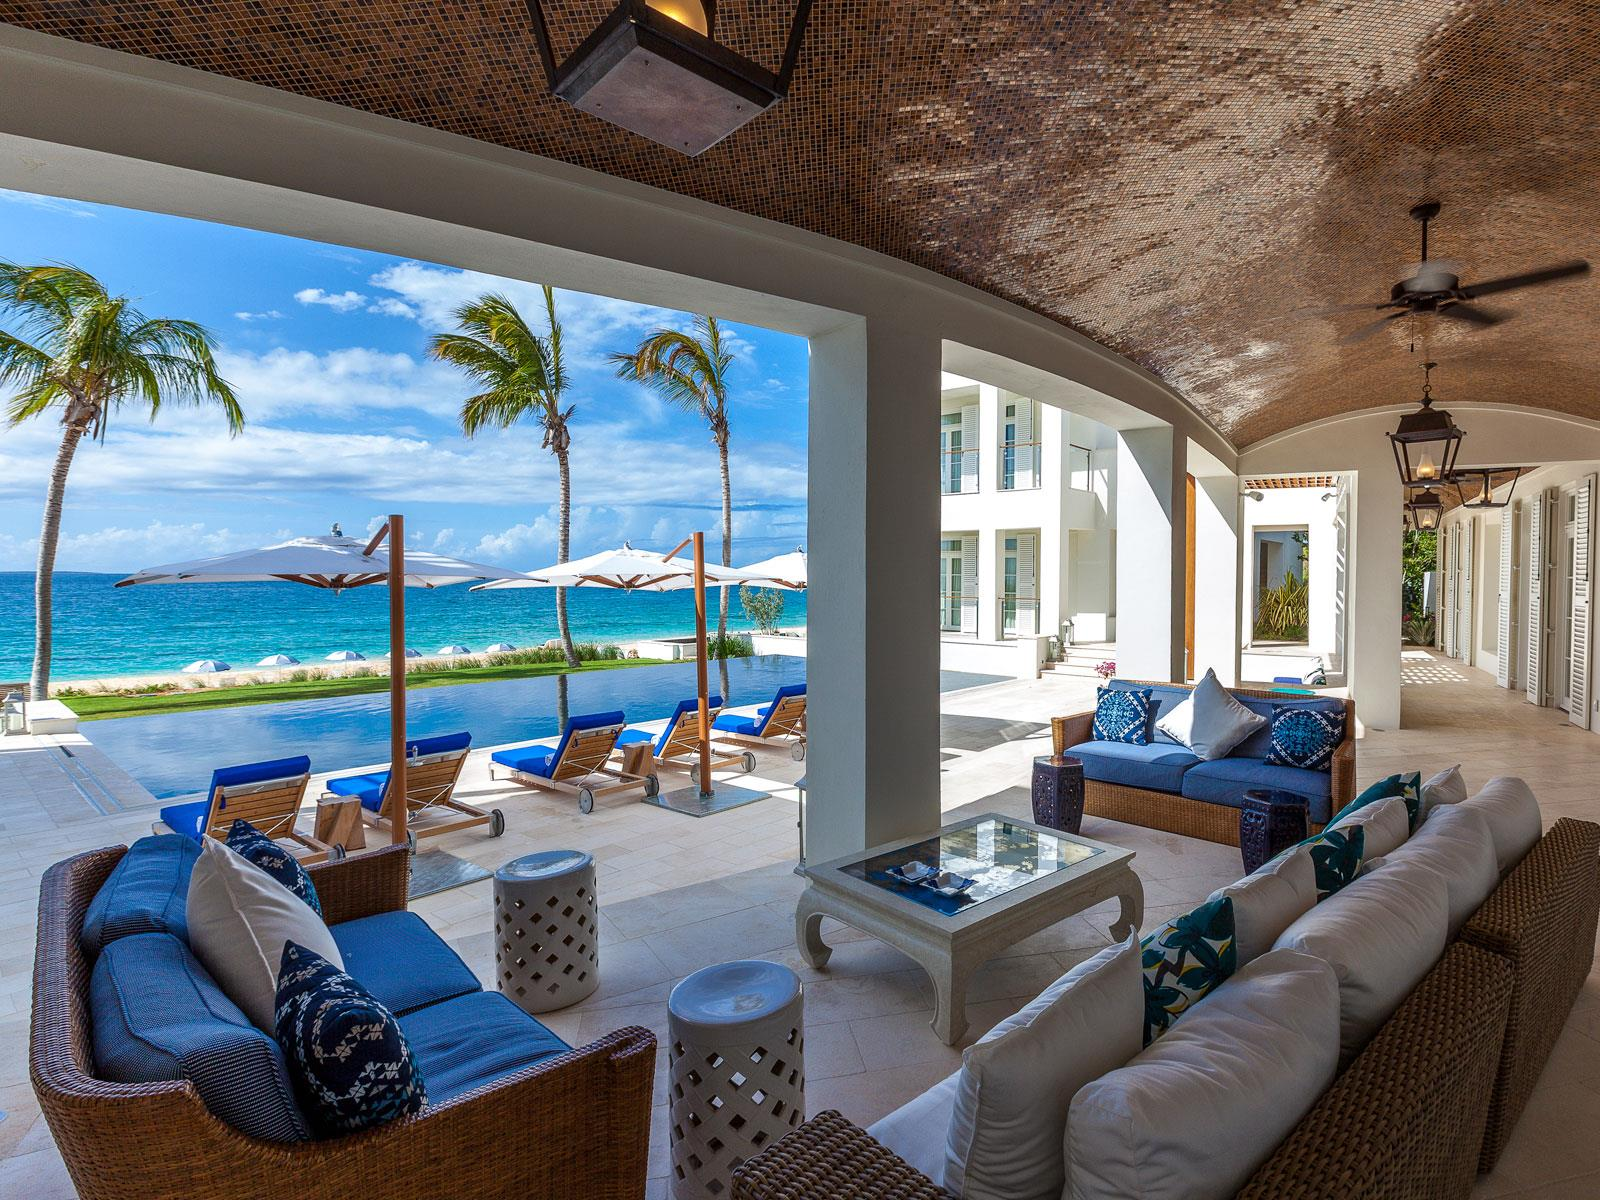 Awe Inspiring Caribbean Real Estate And Apartments For Sale Christies Download Free Architecture Designs Salvmadebymaigaardcom